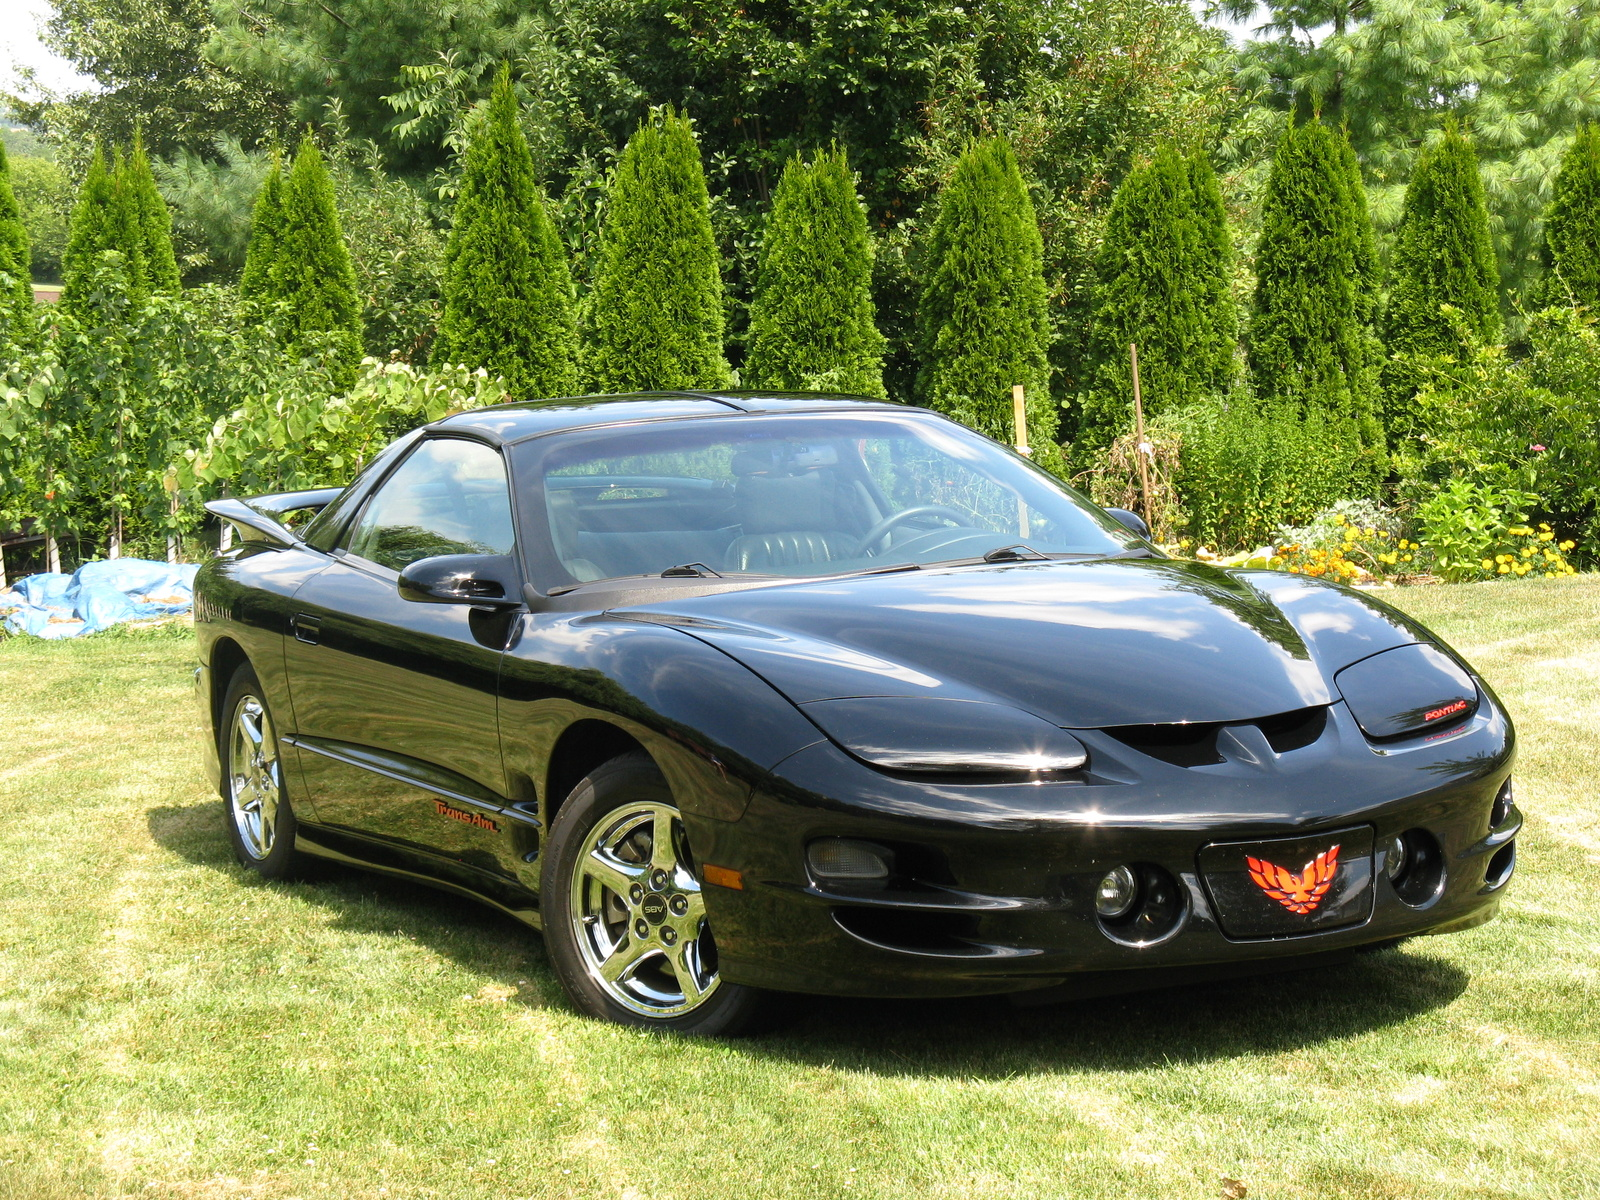 1998 Pontiac Trans Am, Muscle Car